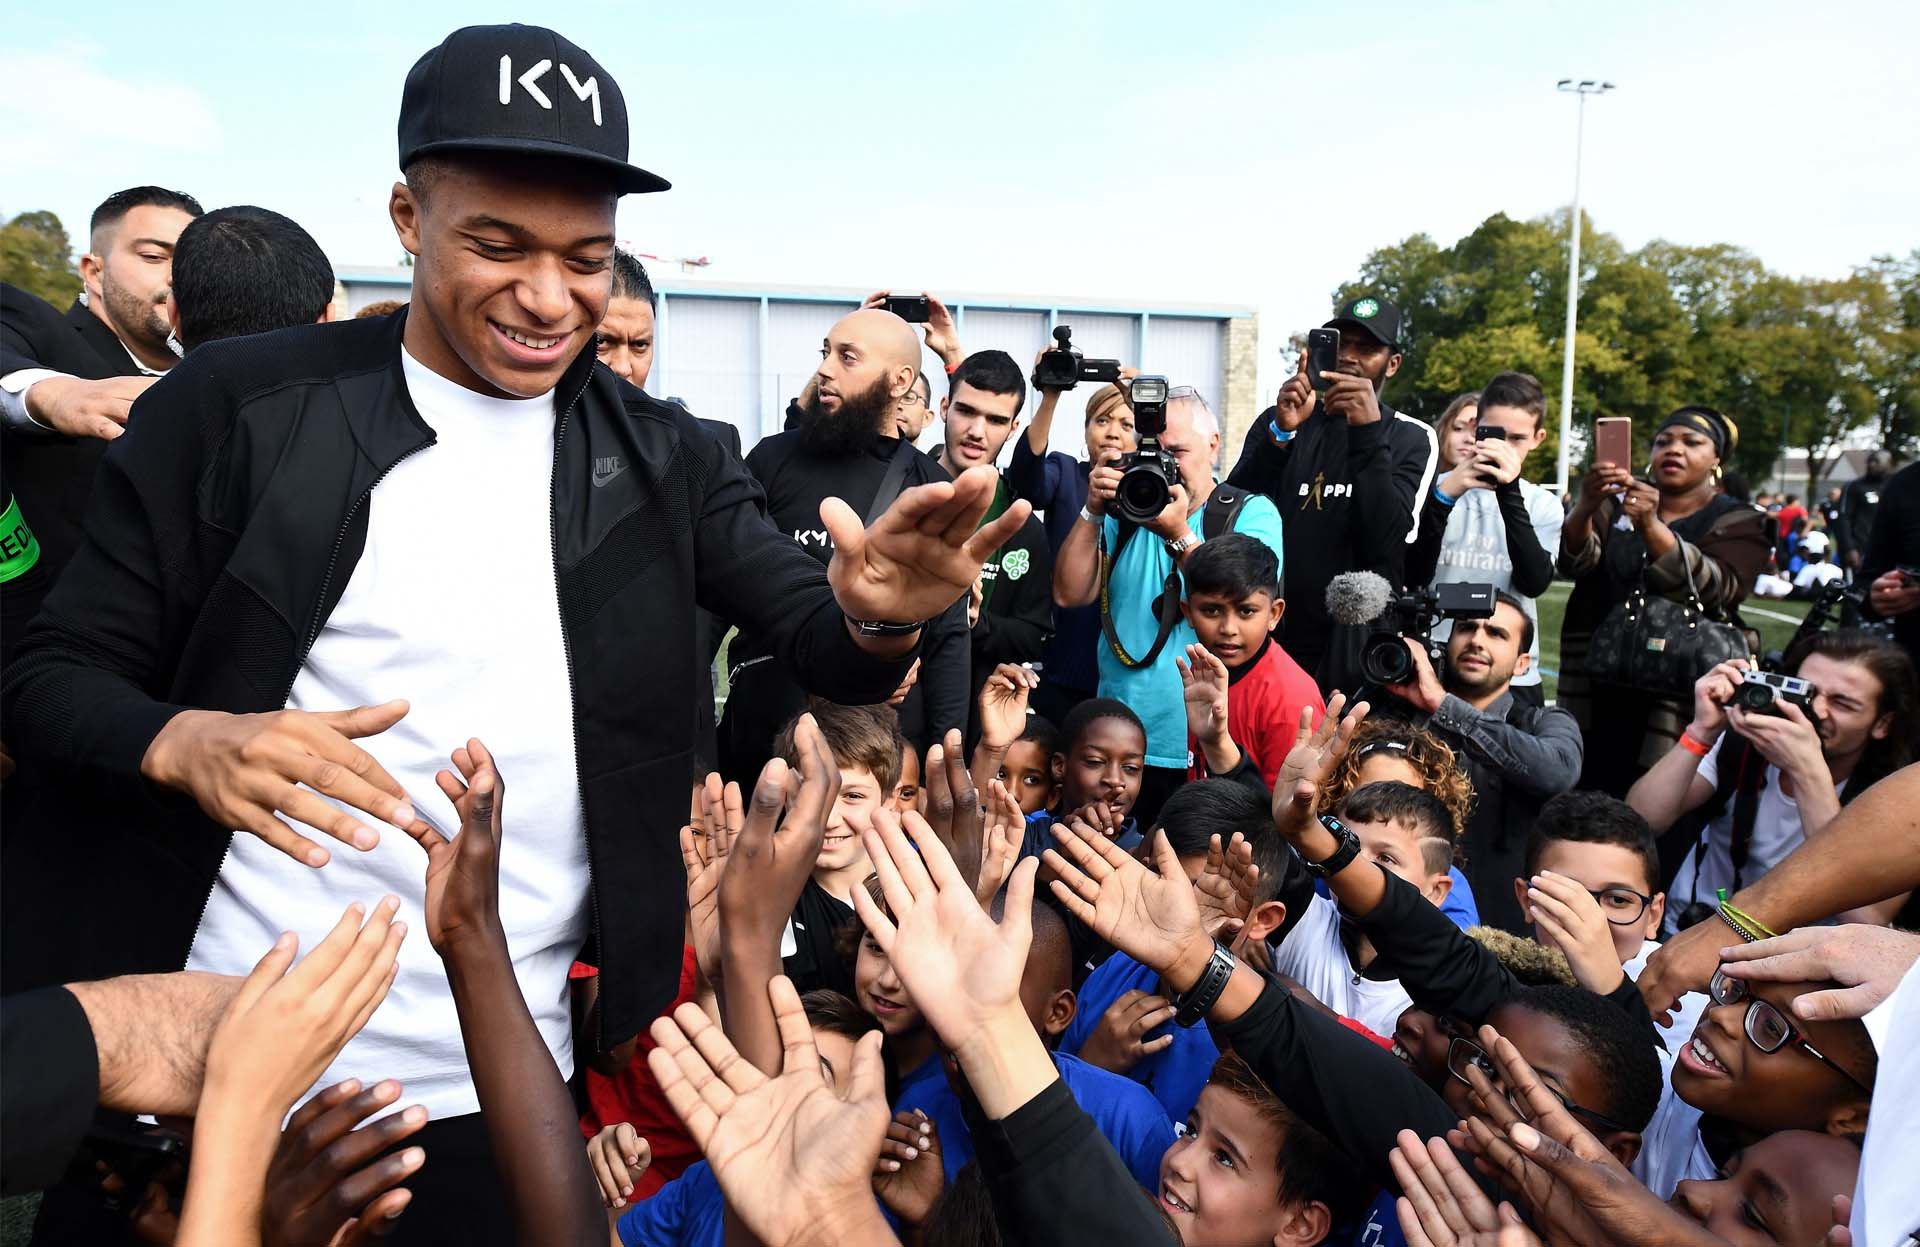 384e7ed82a5 Kylian Mbappé Returns To Hometown As World Champion - SoccerBible.